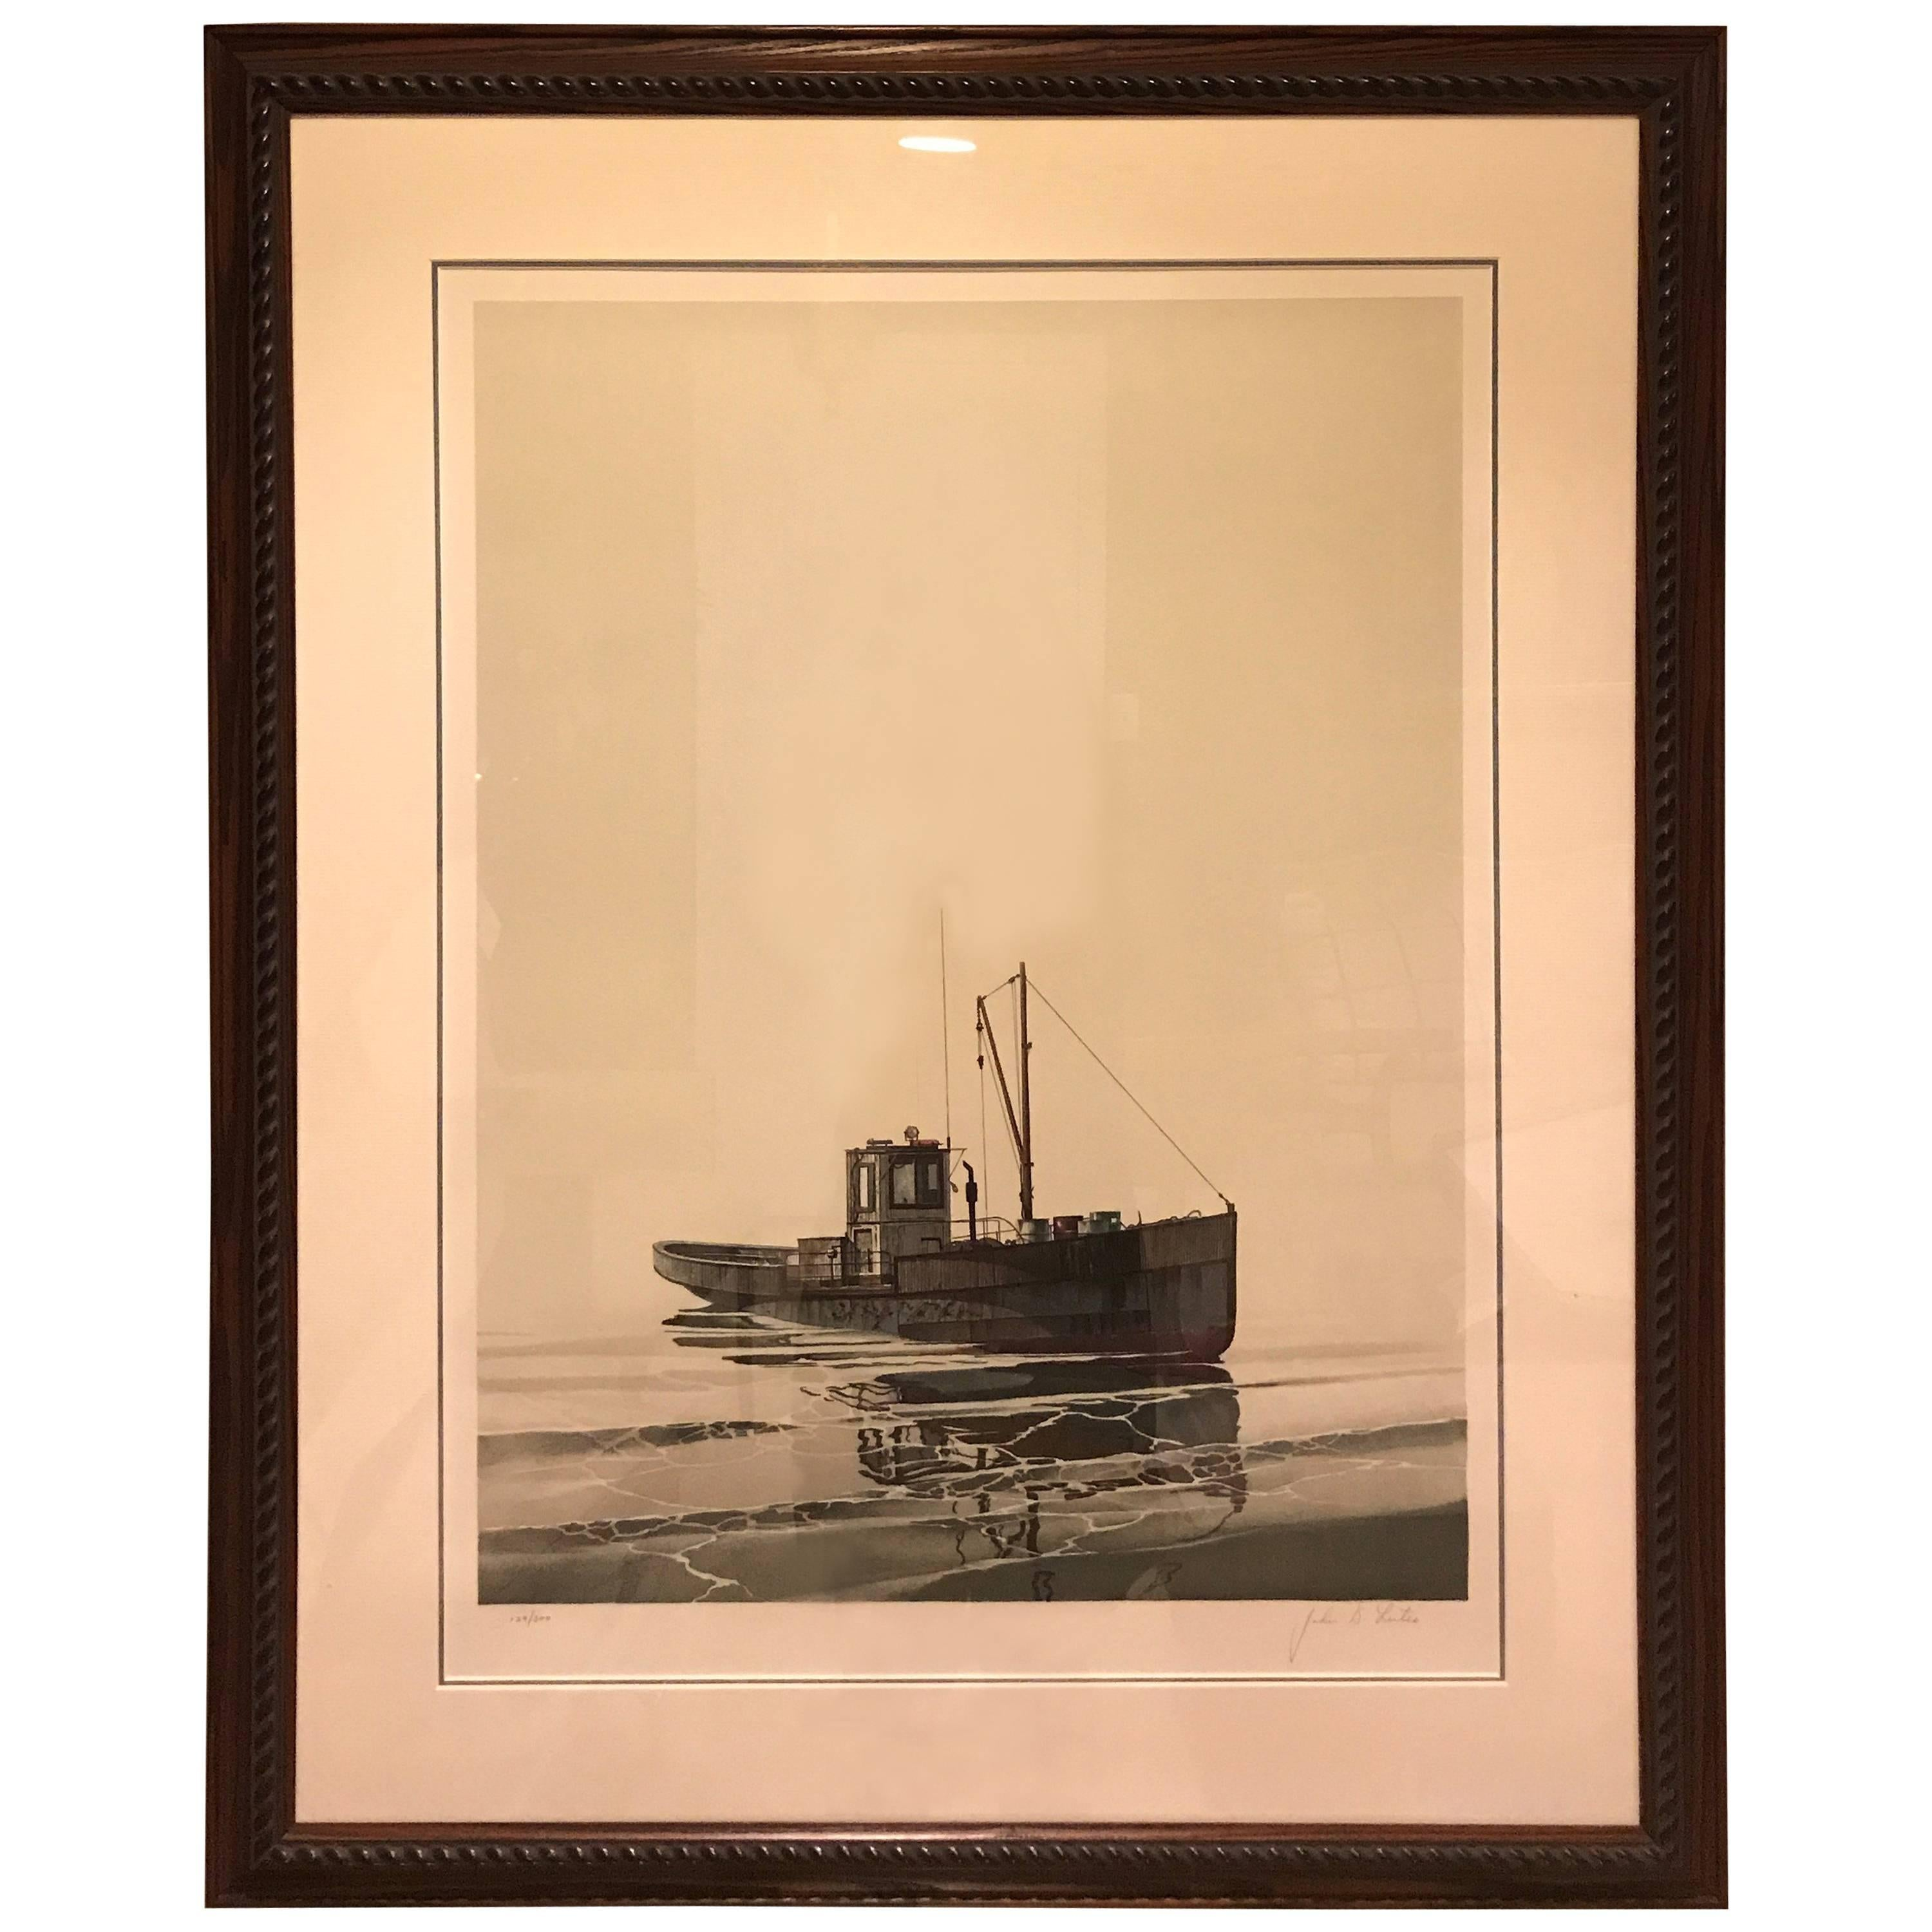 Litho of Fishing Boat Signed John D. Lutes and Numbered 129/300